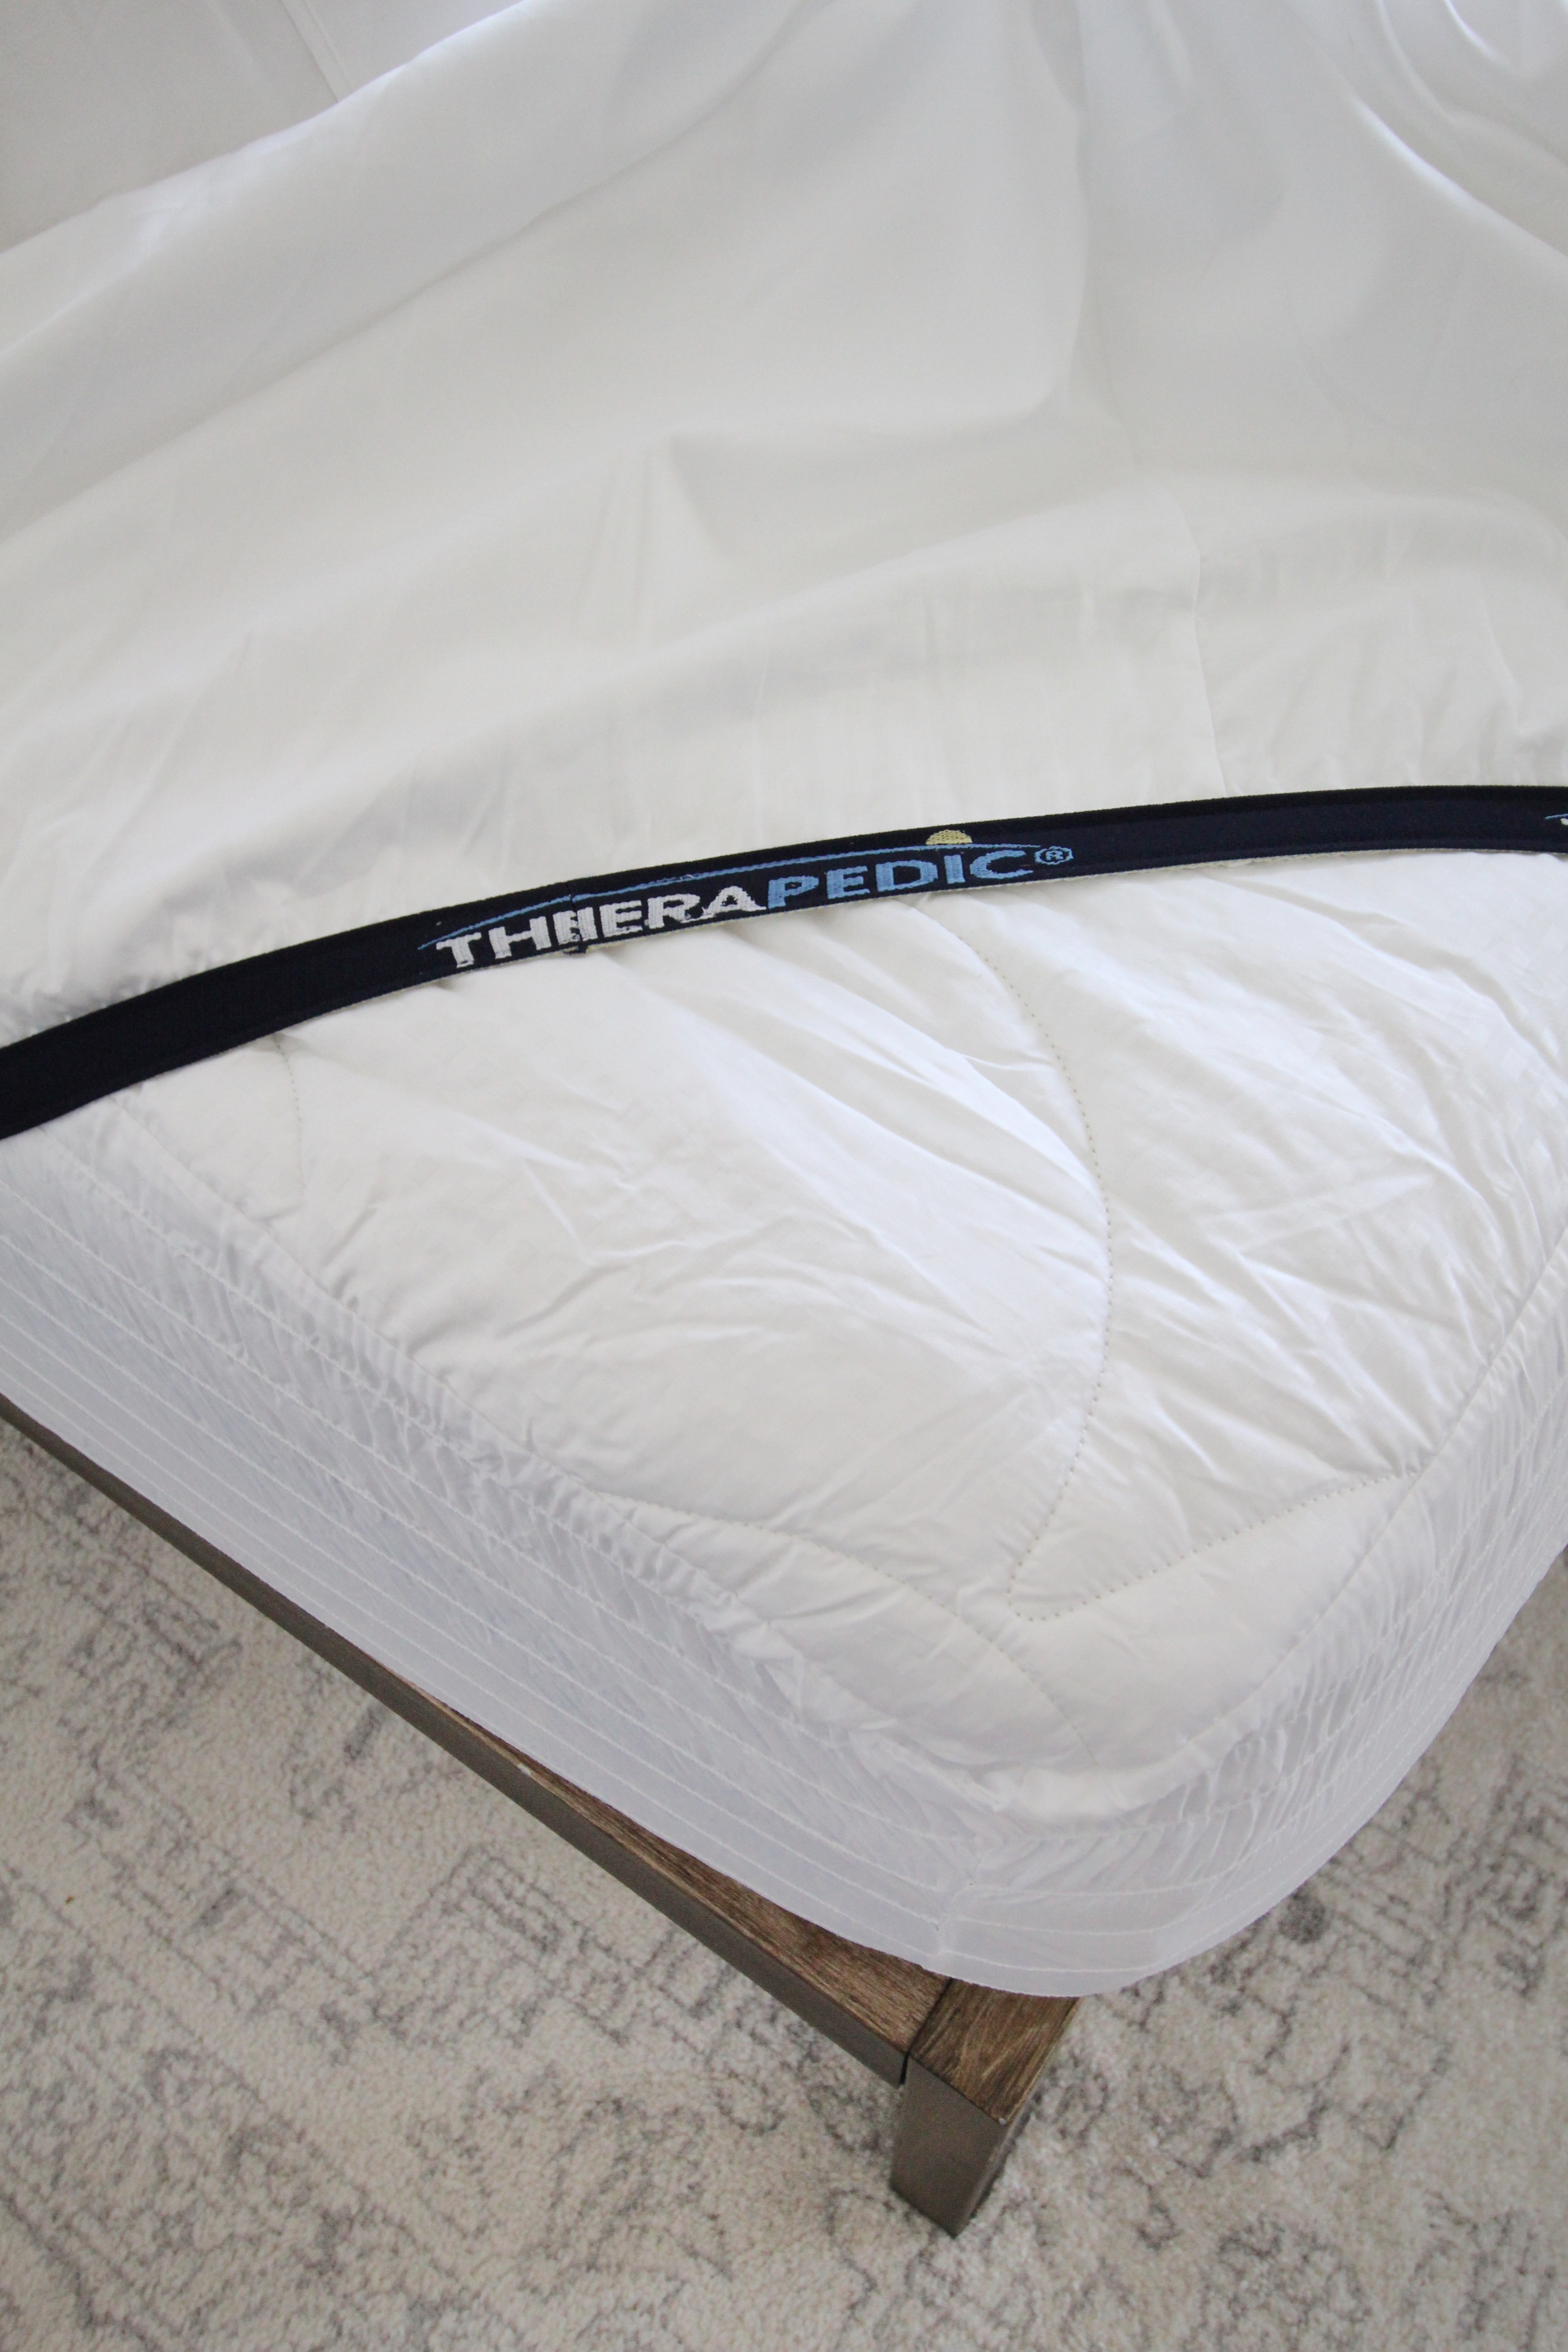 therapedic sheets